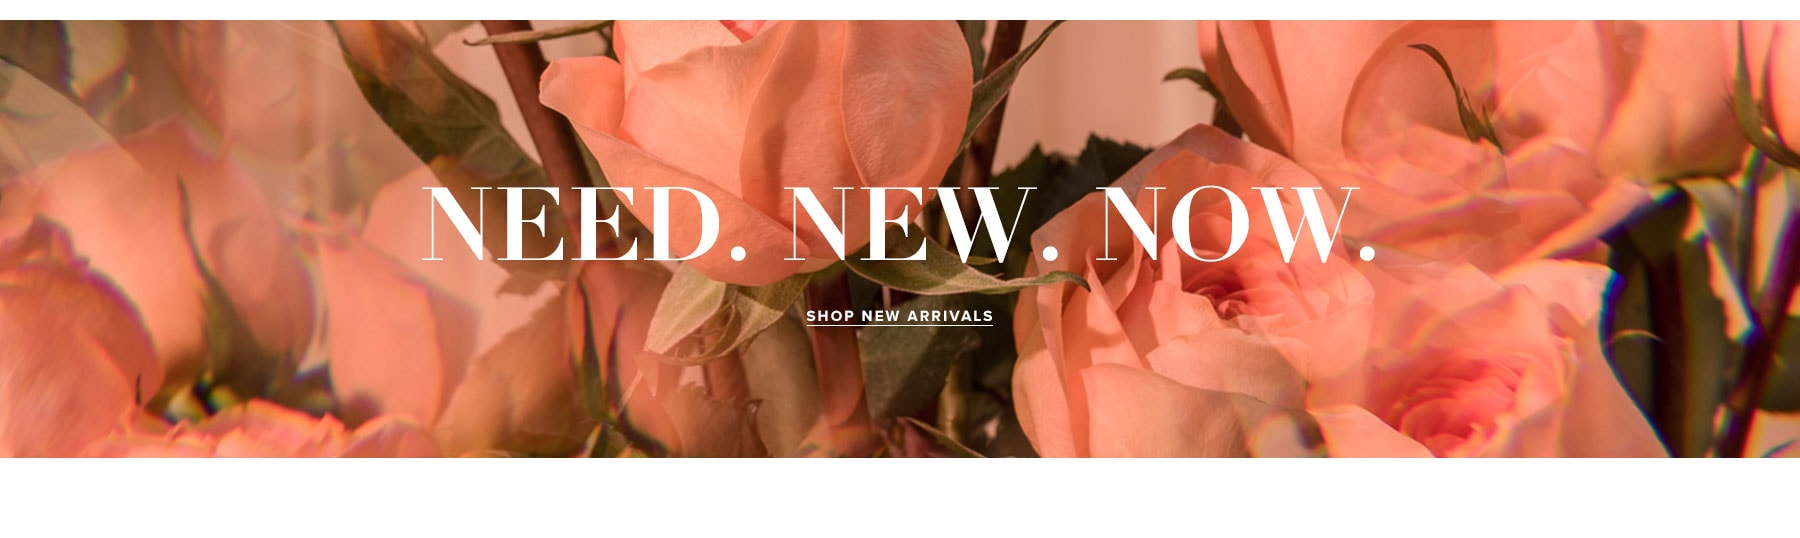 NEED. NEW. NOW. Shop New Arrivals.